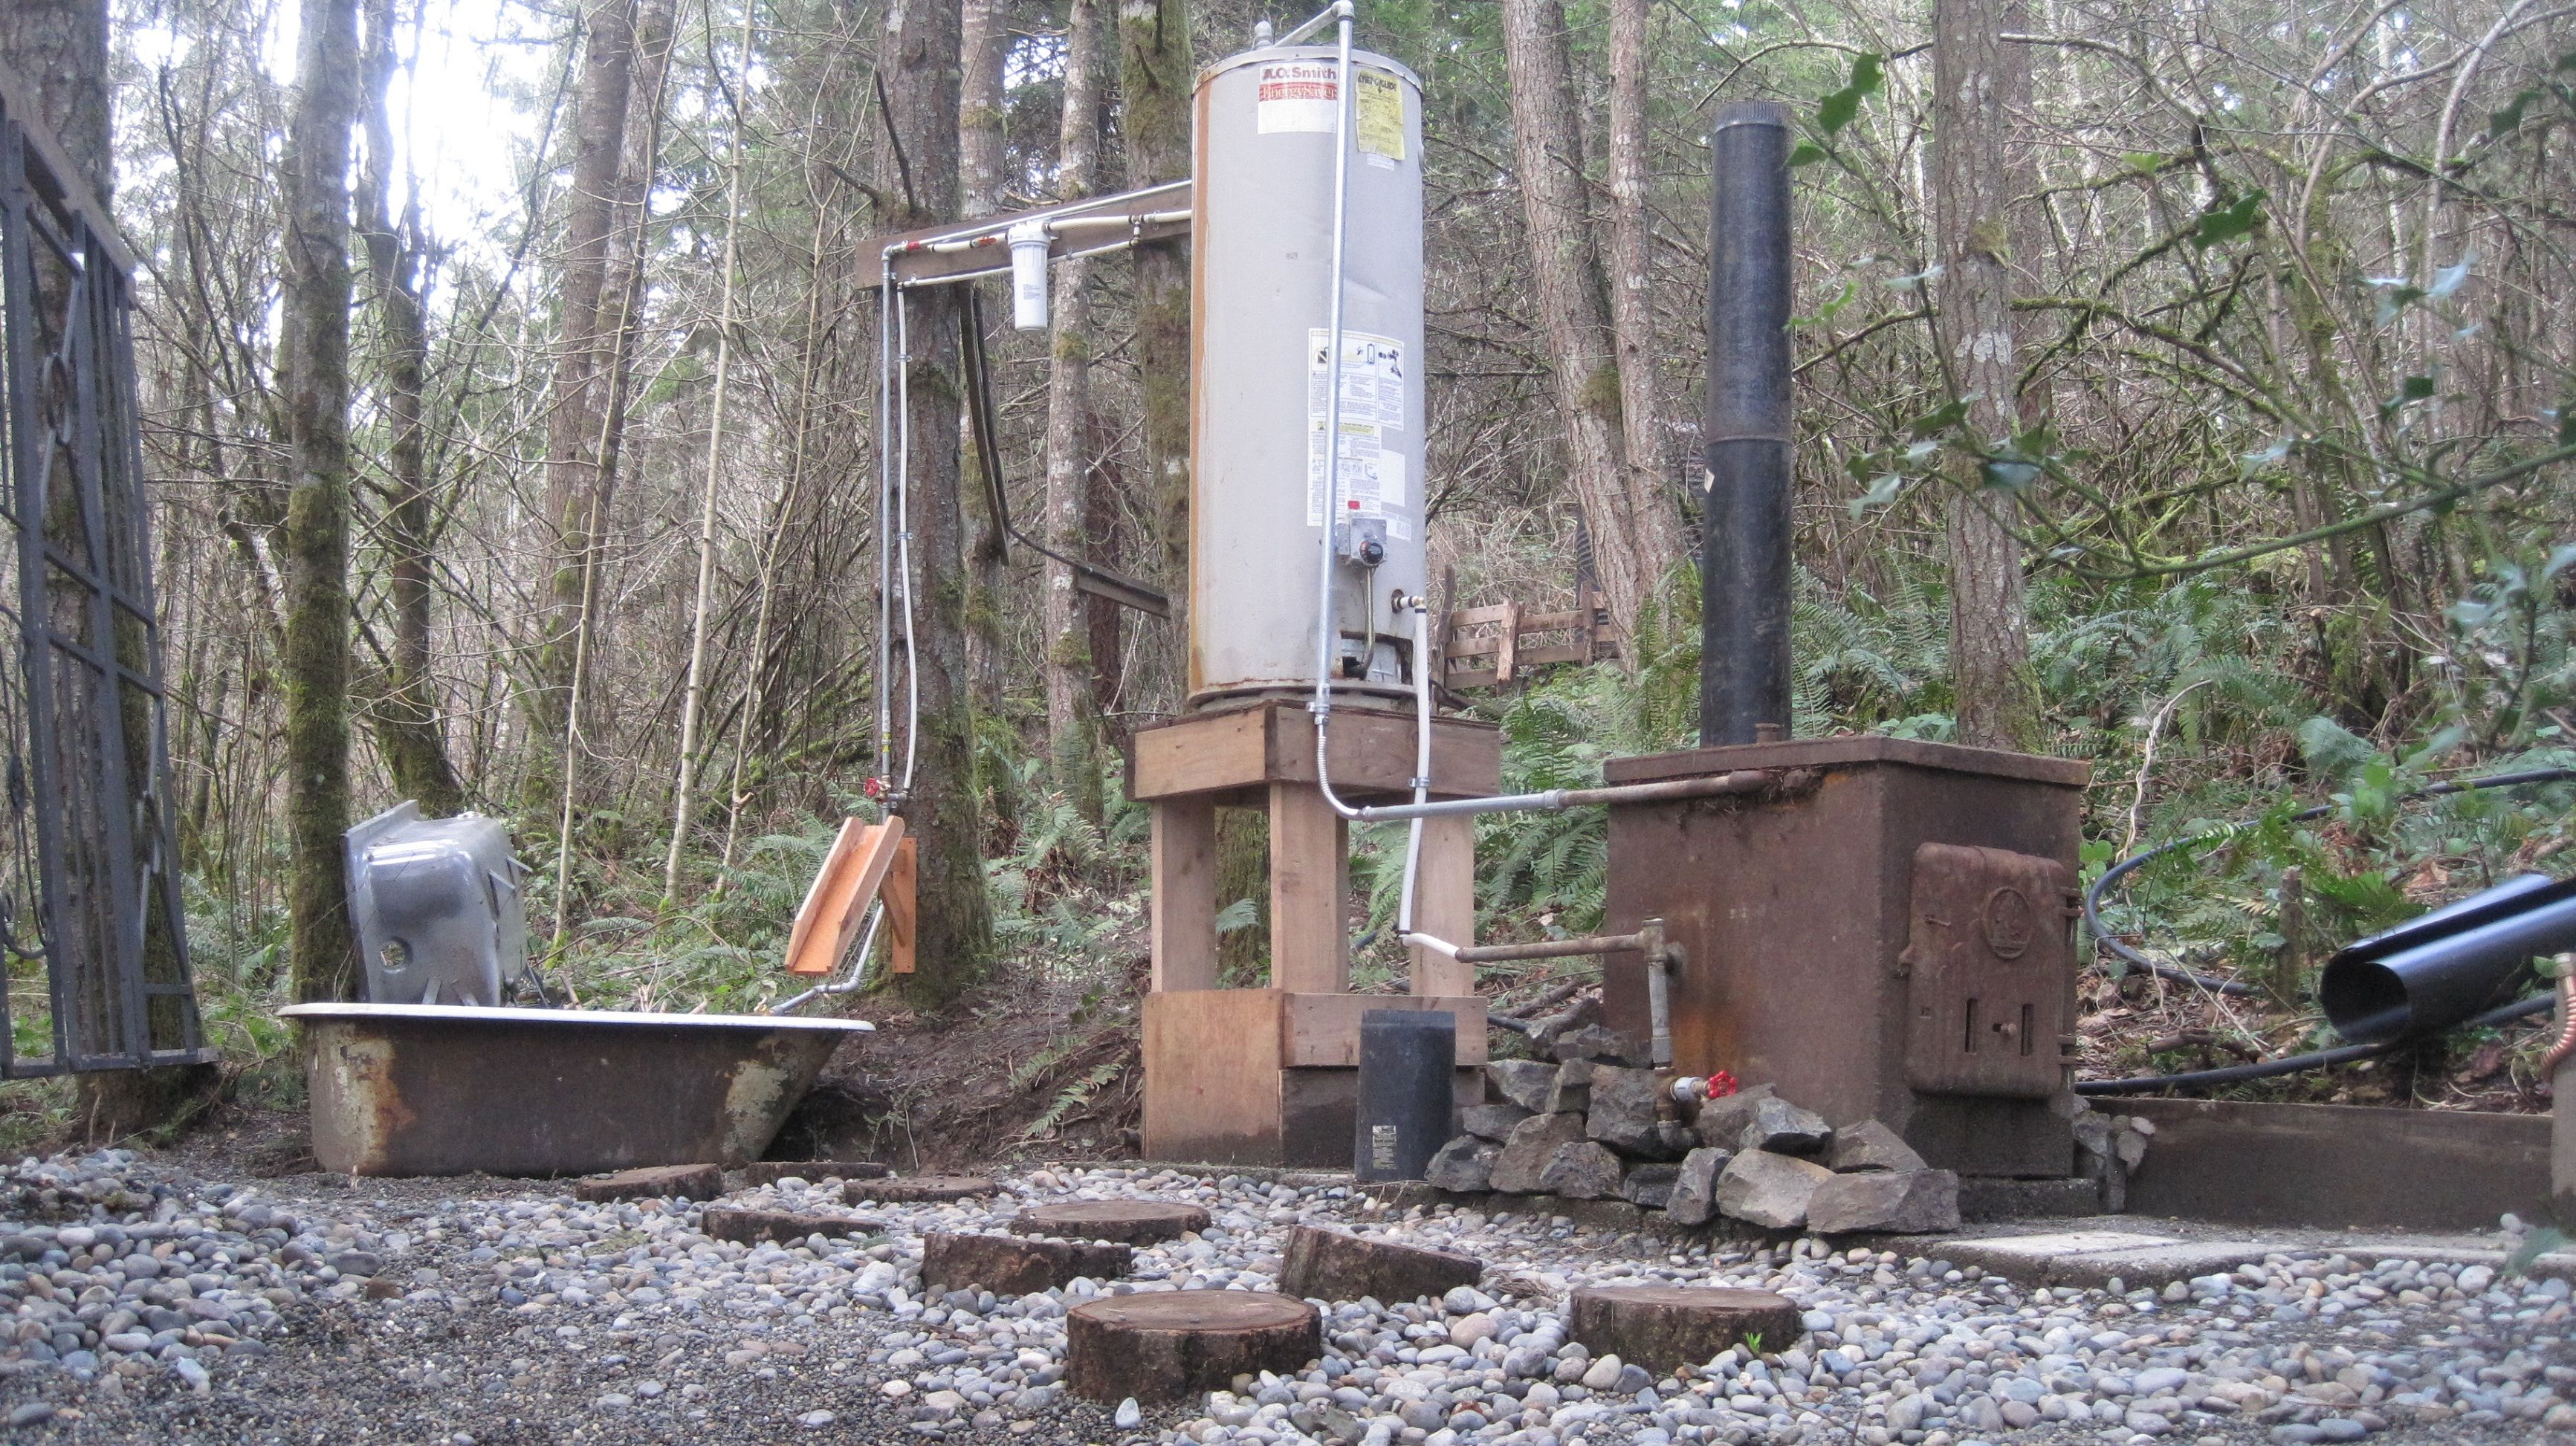 The off grid wood fired water heater for our outdoor bath